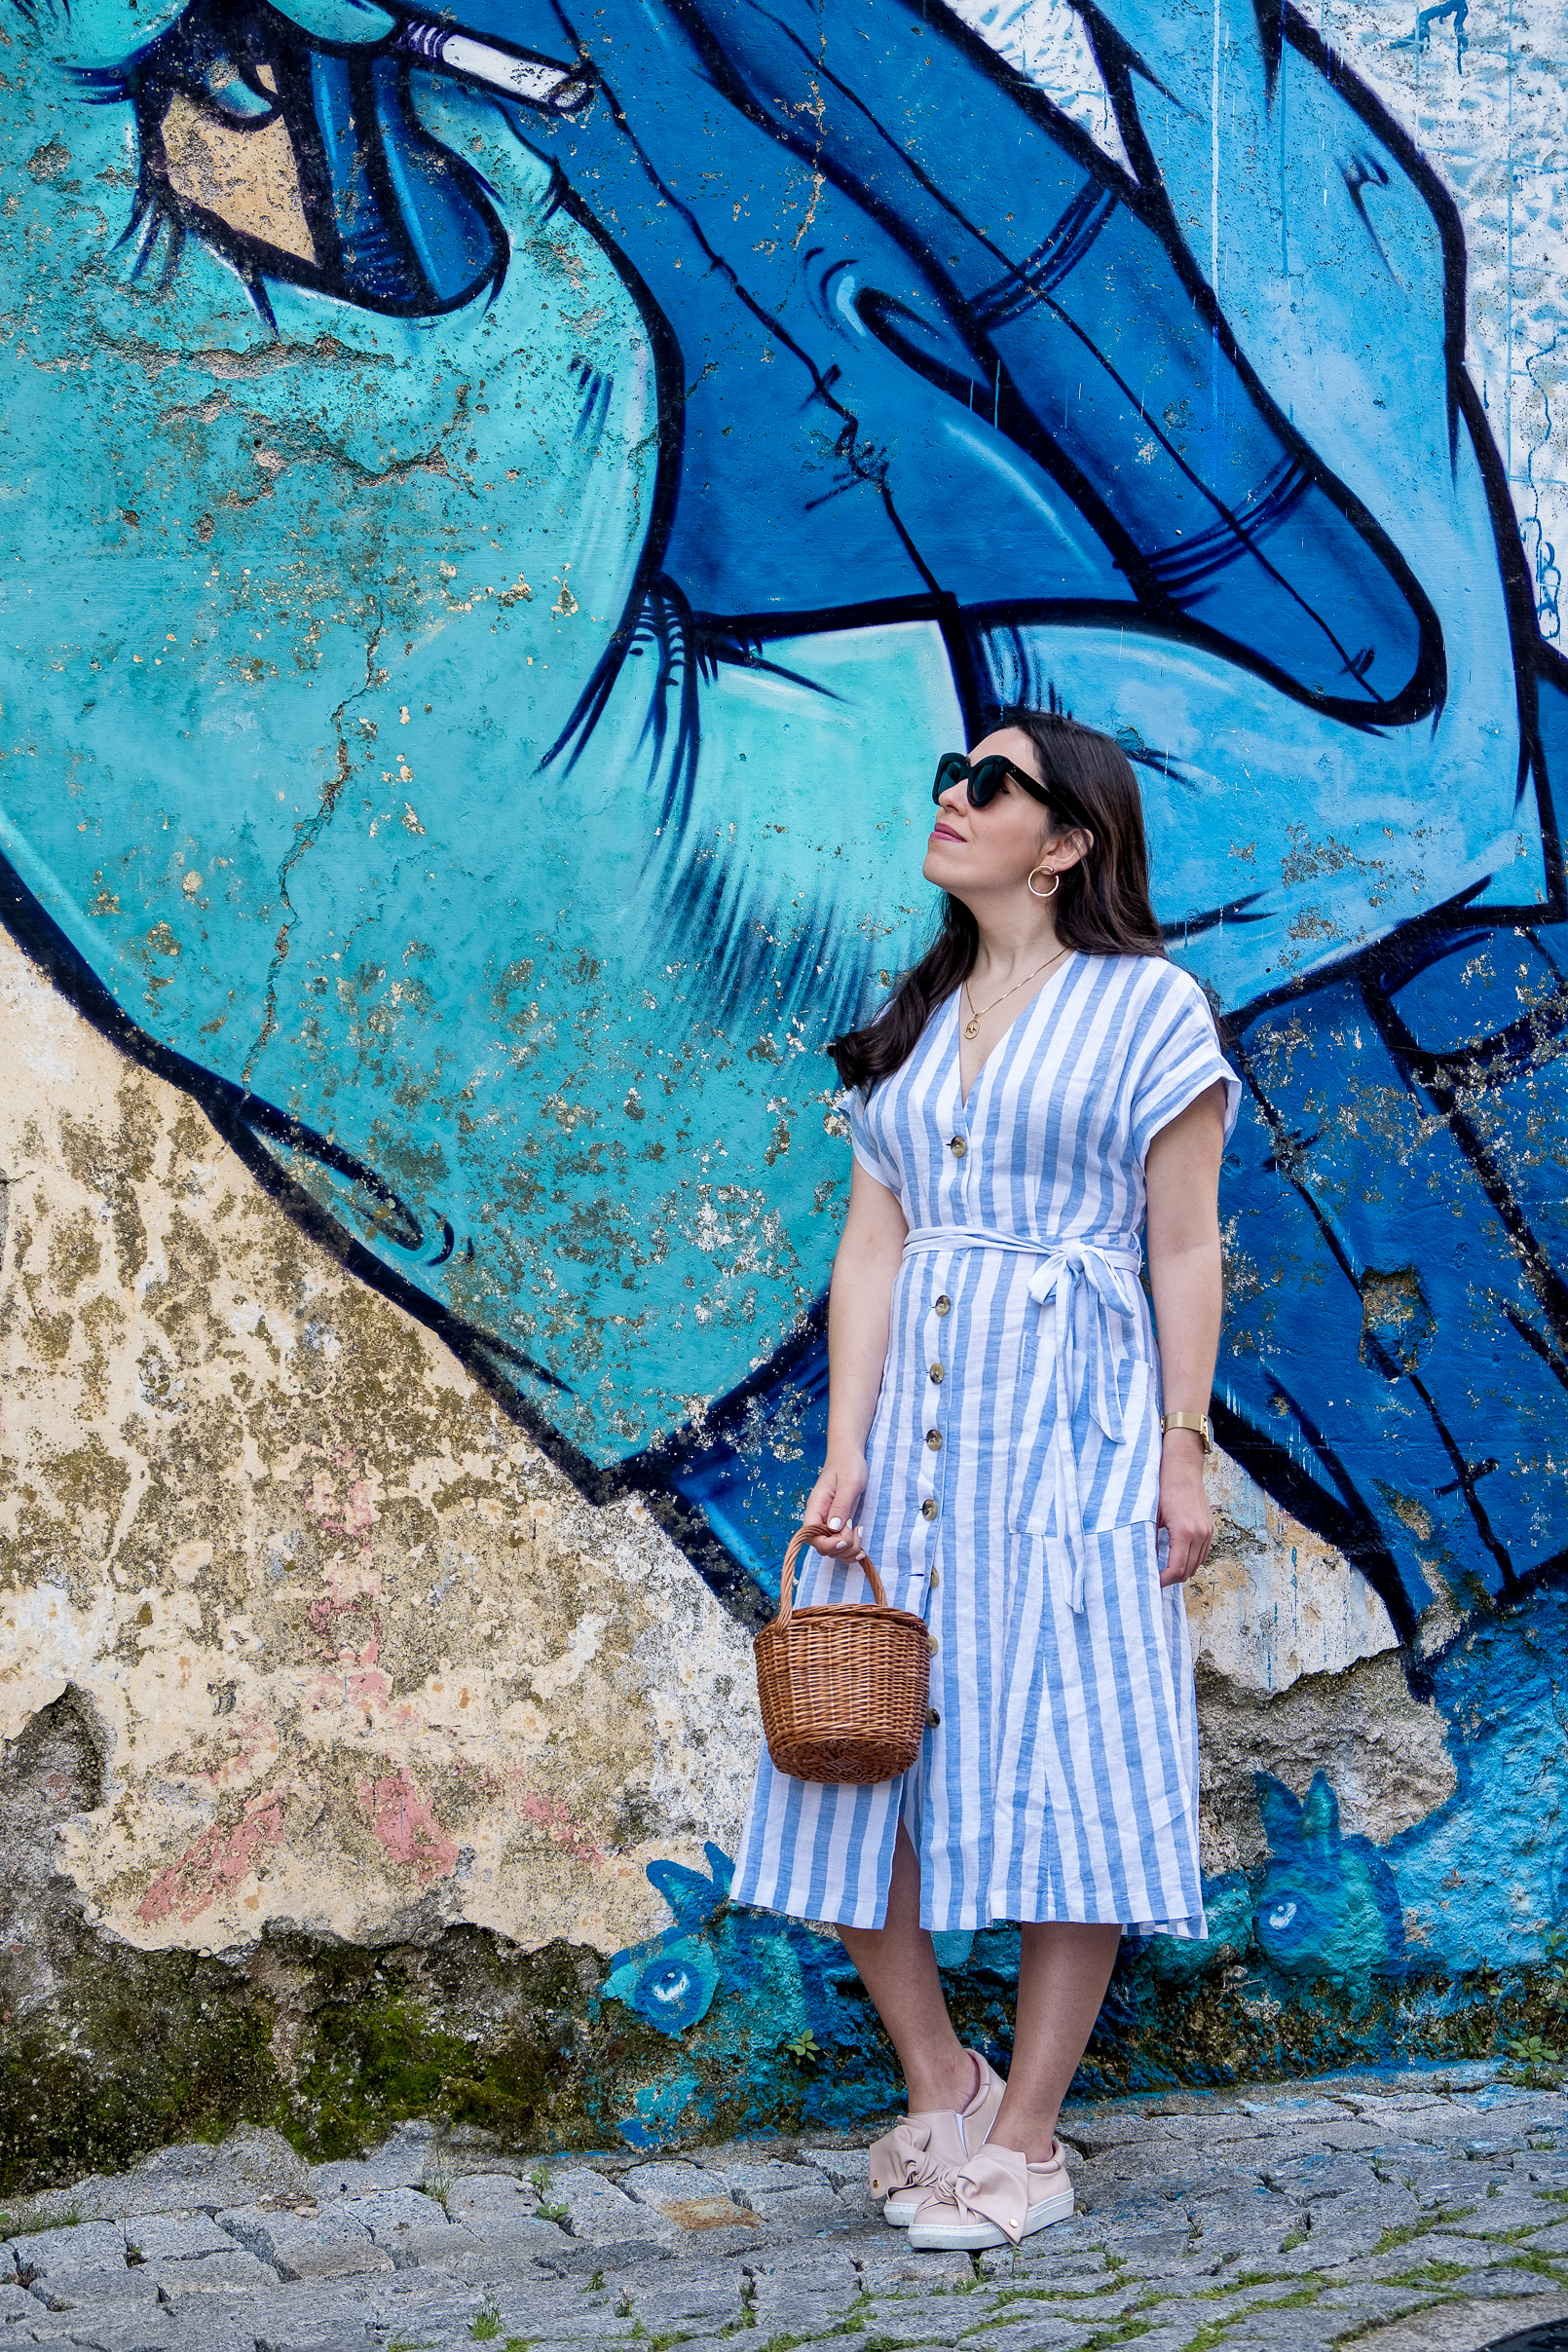 Le Fashionaire white pale blue stripes mango linen dress pale pink bow sneakers dora guimaraes straw bag la petite sardine street art covilha paintings 9656 EN white pale blue stripes mango linen dress pale pink bow sneakers dora guimaraes straw bag la petite sardine street art covilha paintings 9656 EN